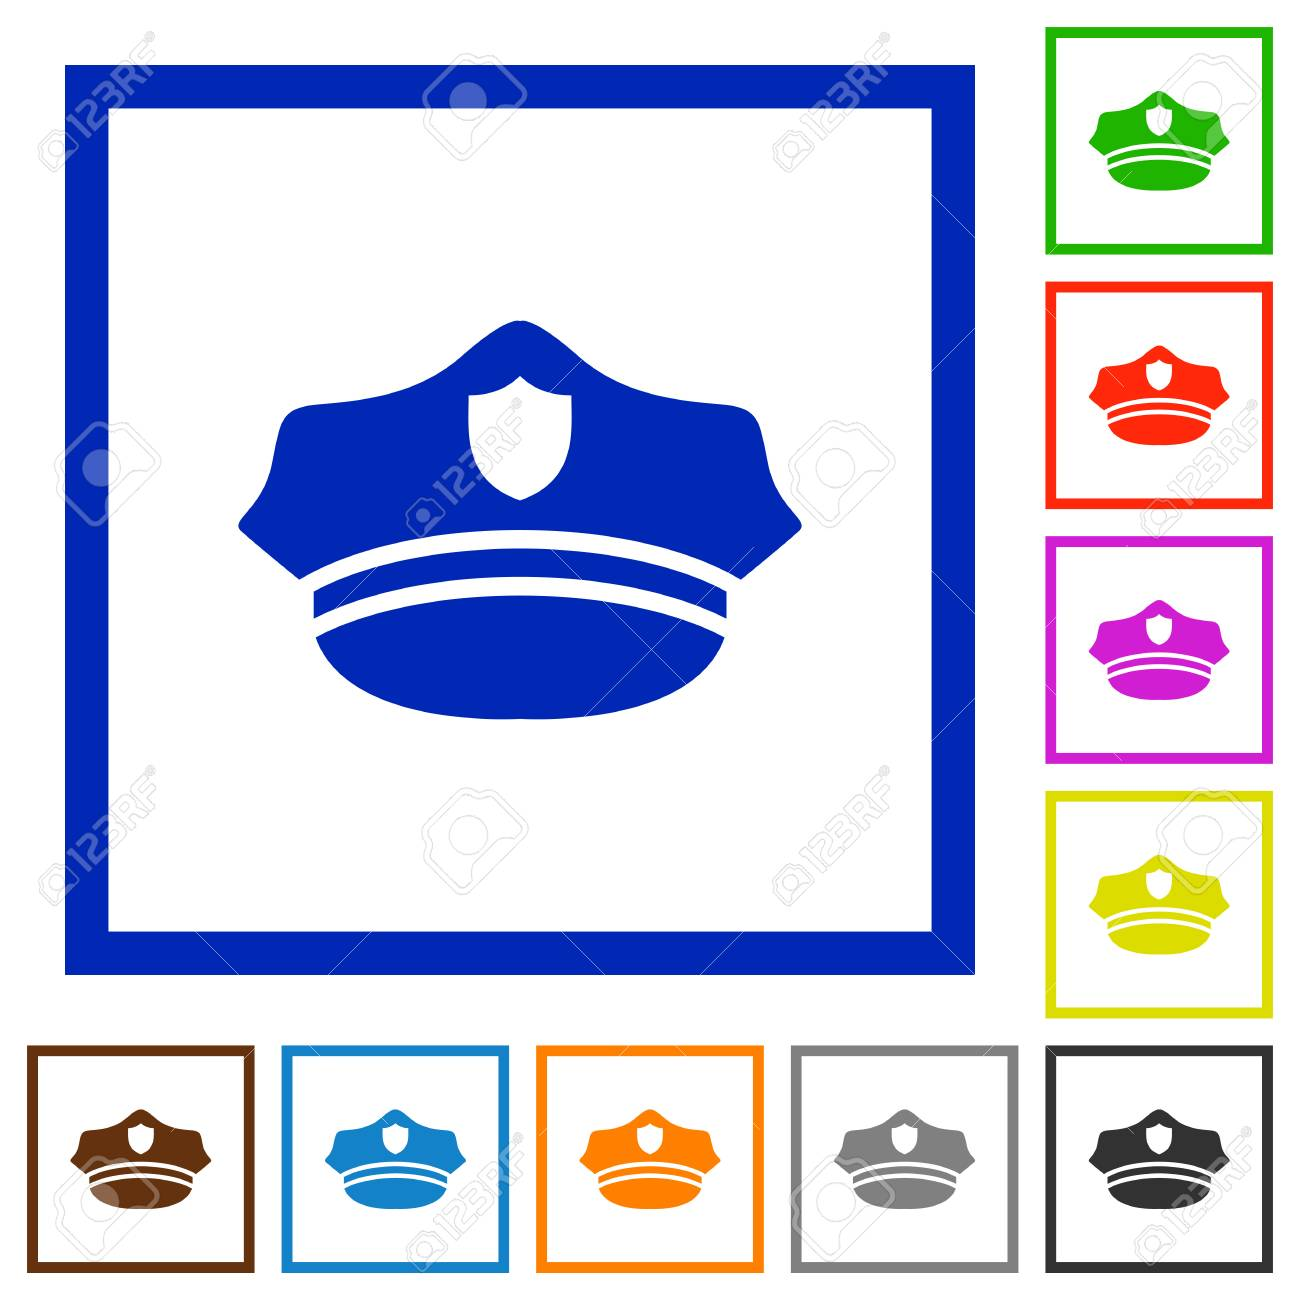 Police Hat Flat Color Icons In Square Frames On White Background ...